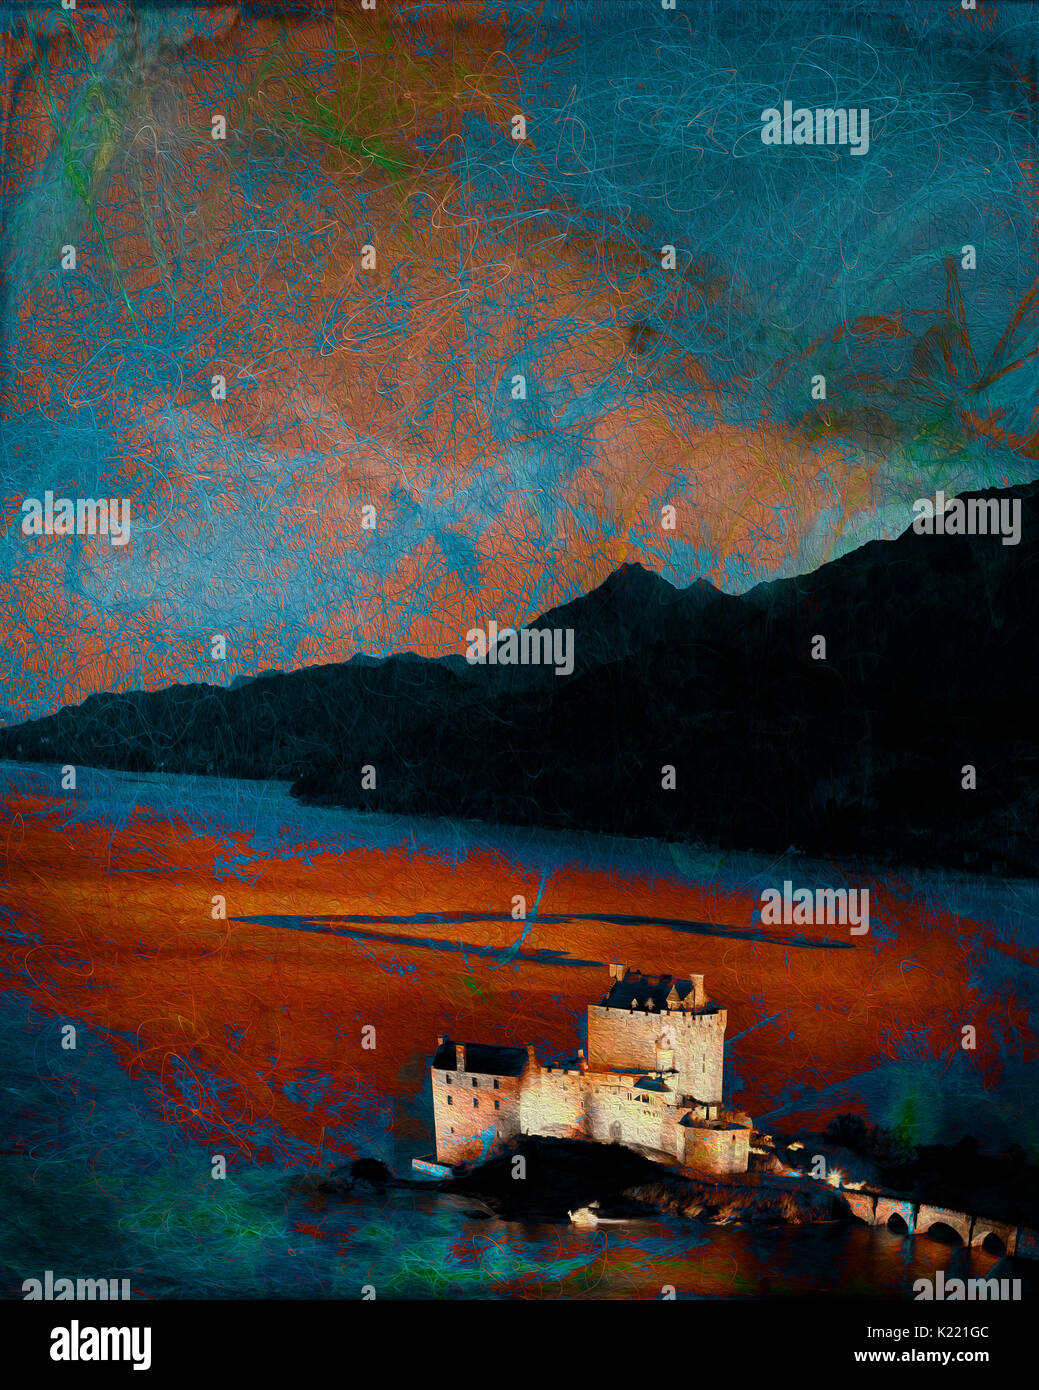 DIGITAL ART: Eilean Donan Castle at Dornie, Scottish Highlands - Stock Image